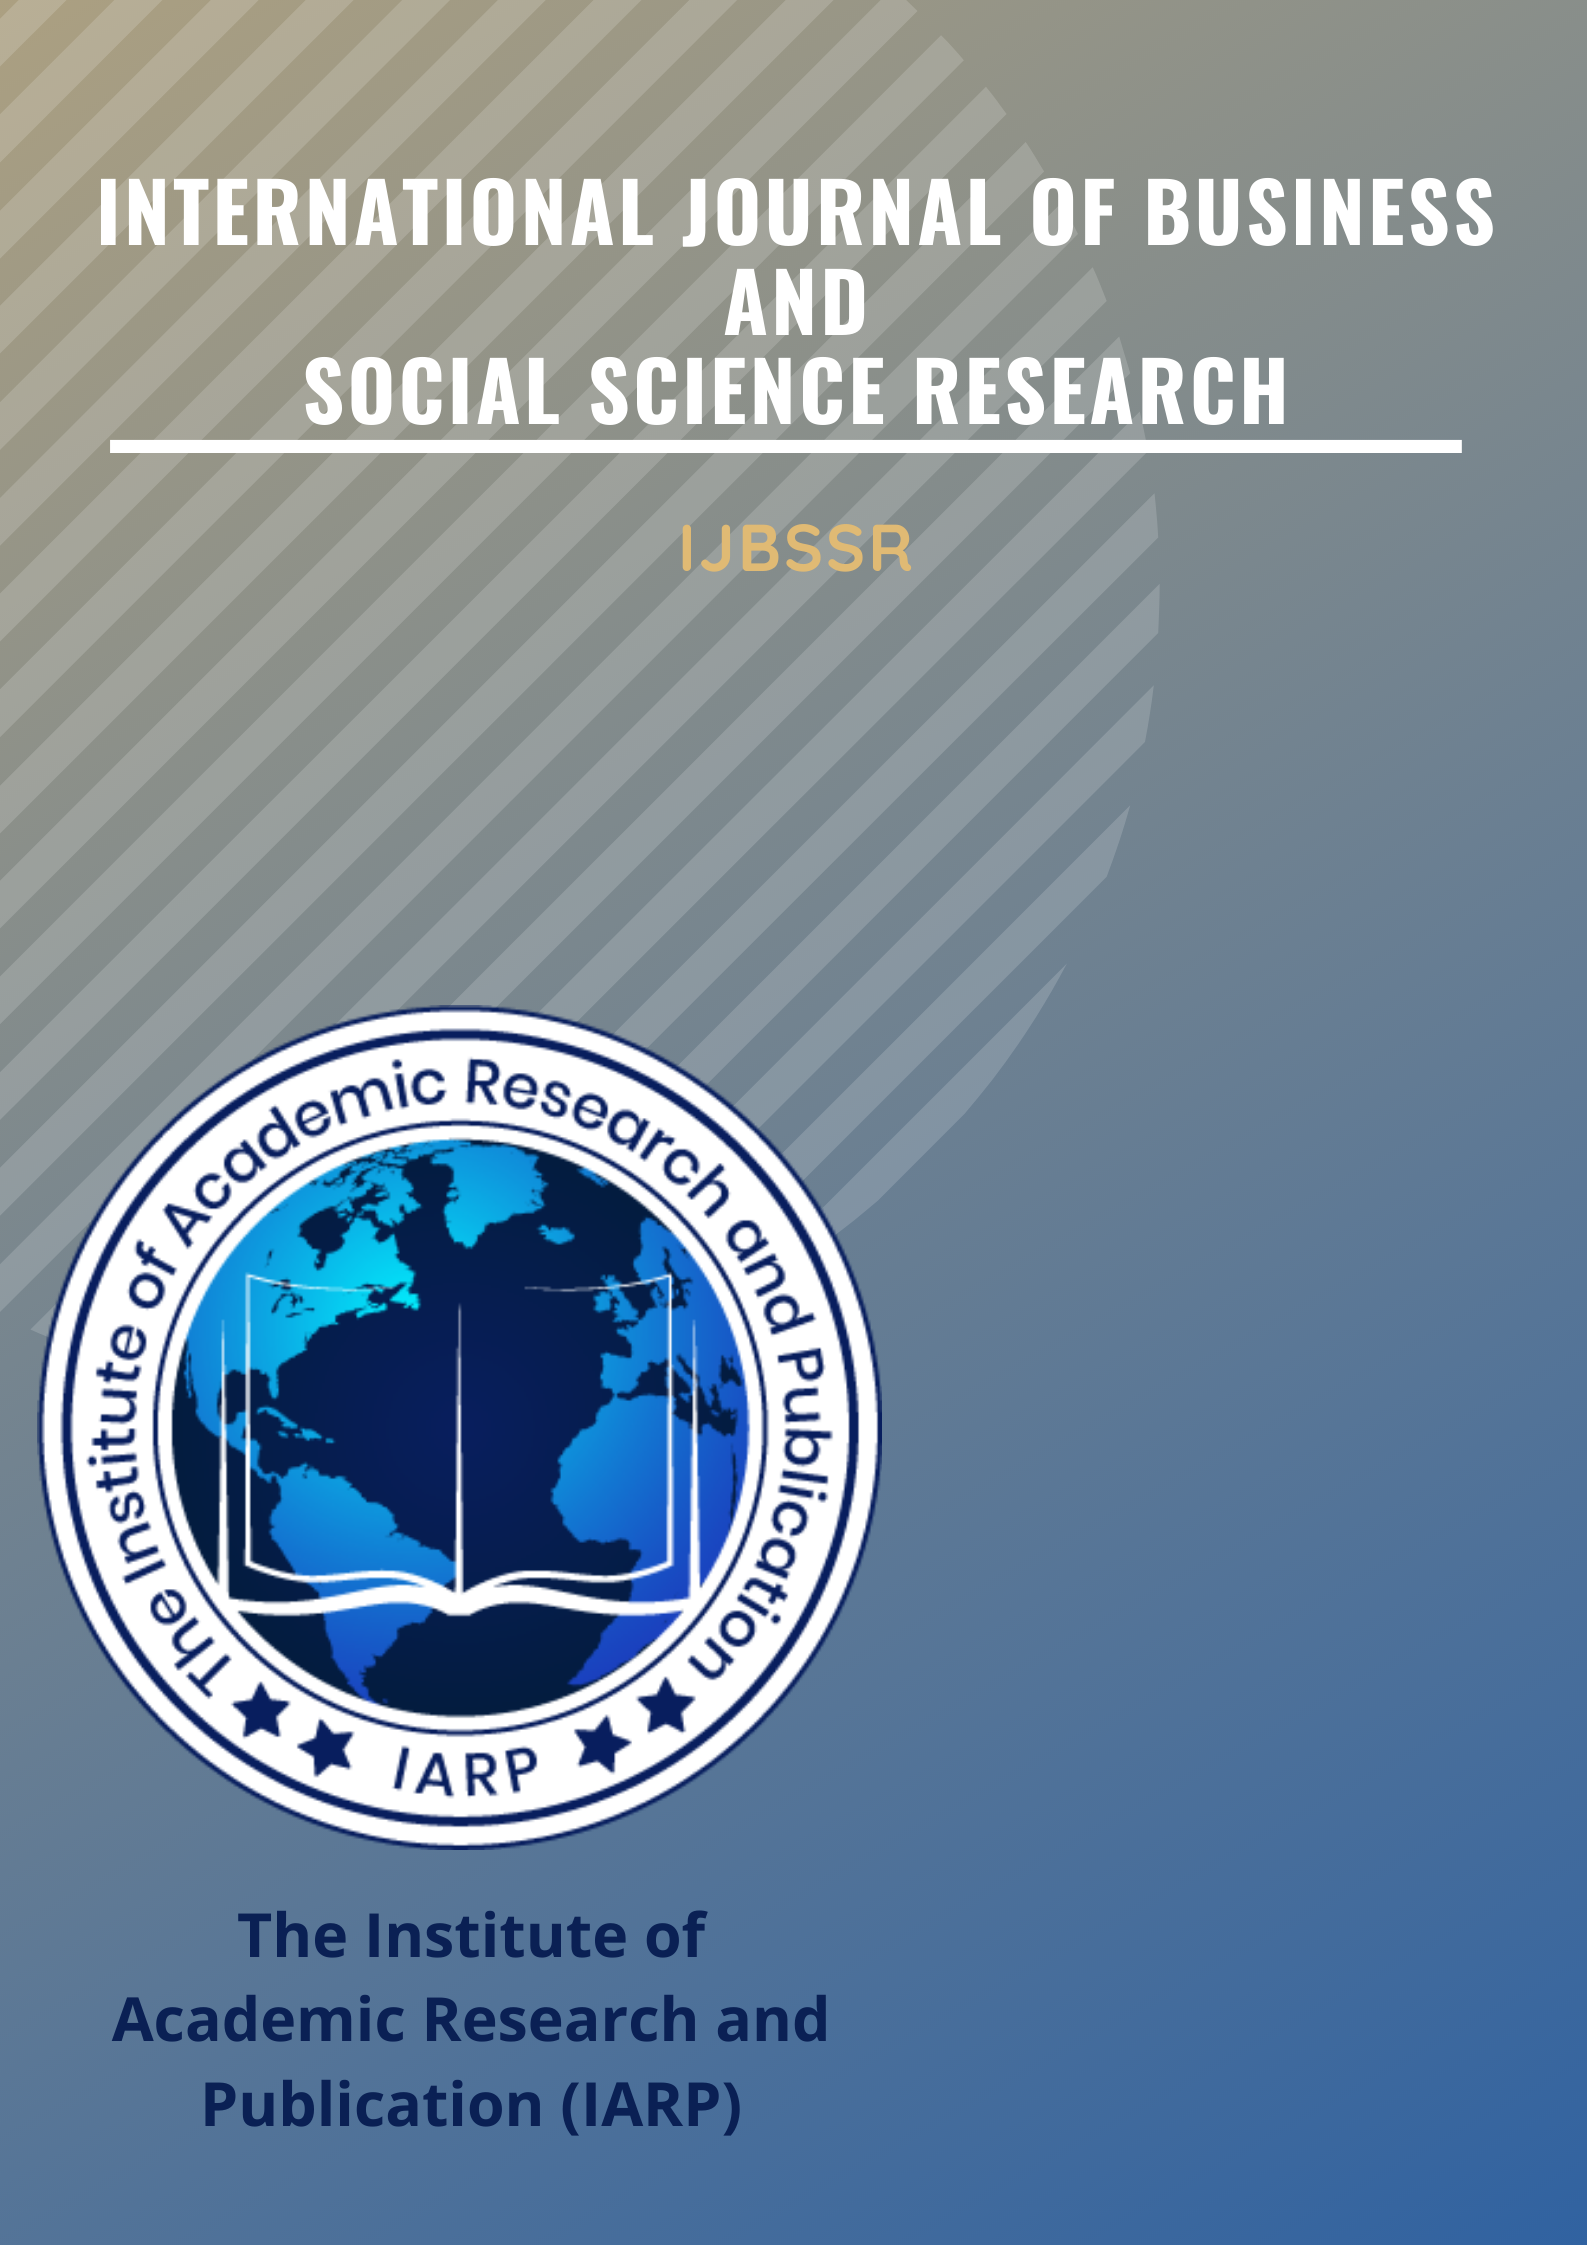 International Journal of Business and Social Science Research-Asos İndeks